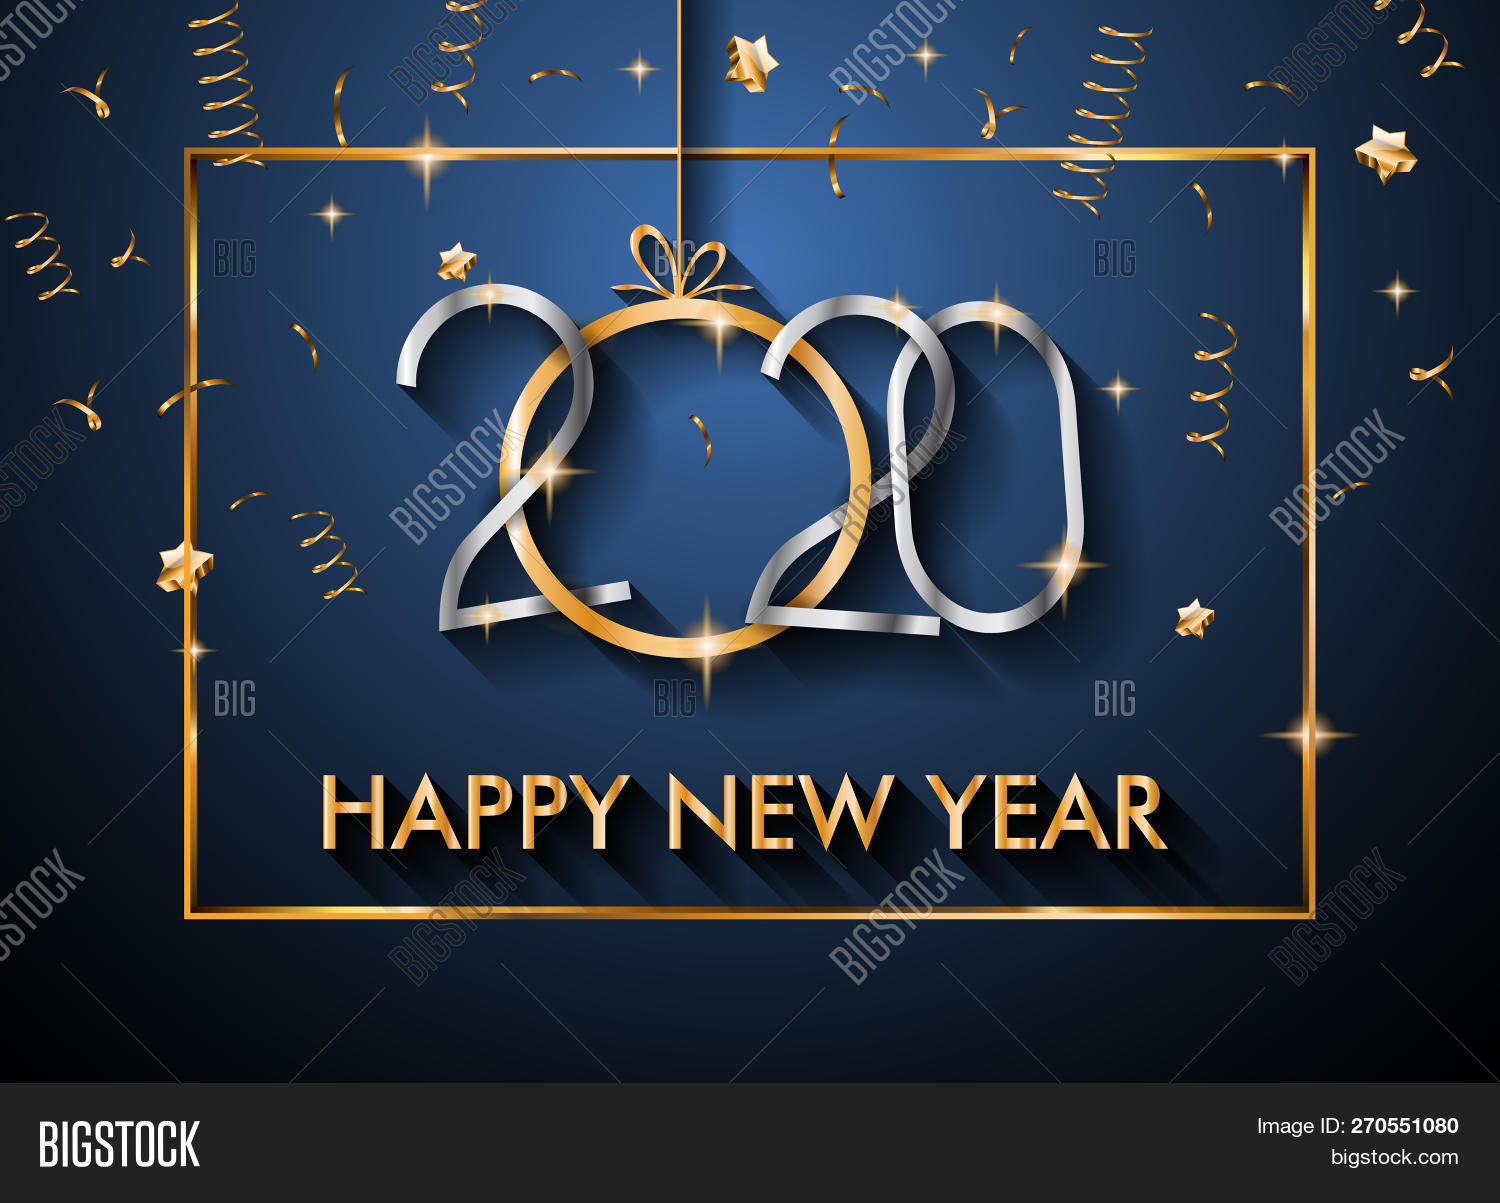 2020 Happy New Year Image & Photo (Free Trial) | Bigstock